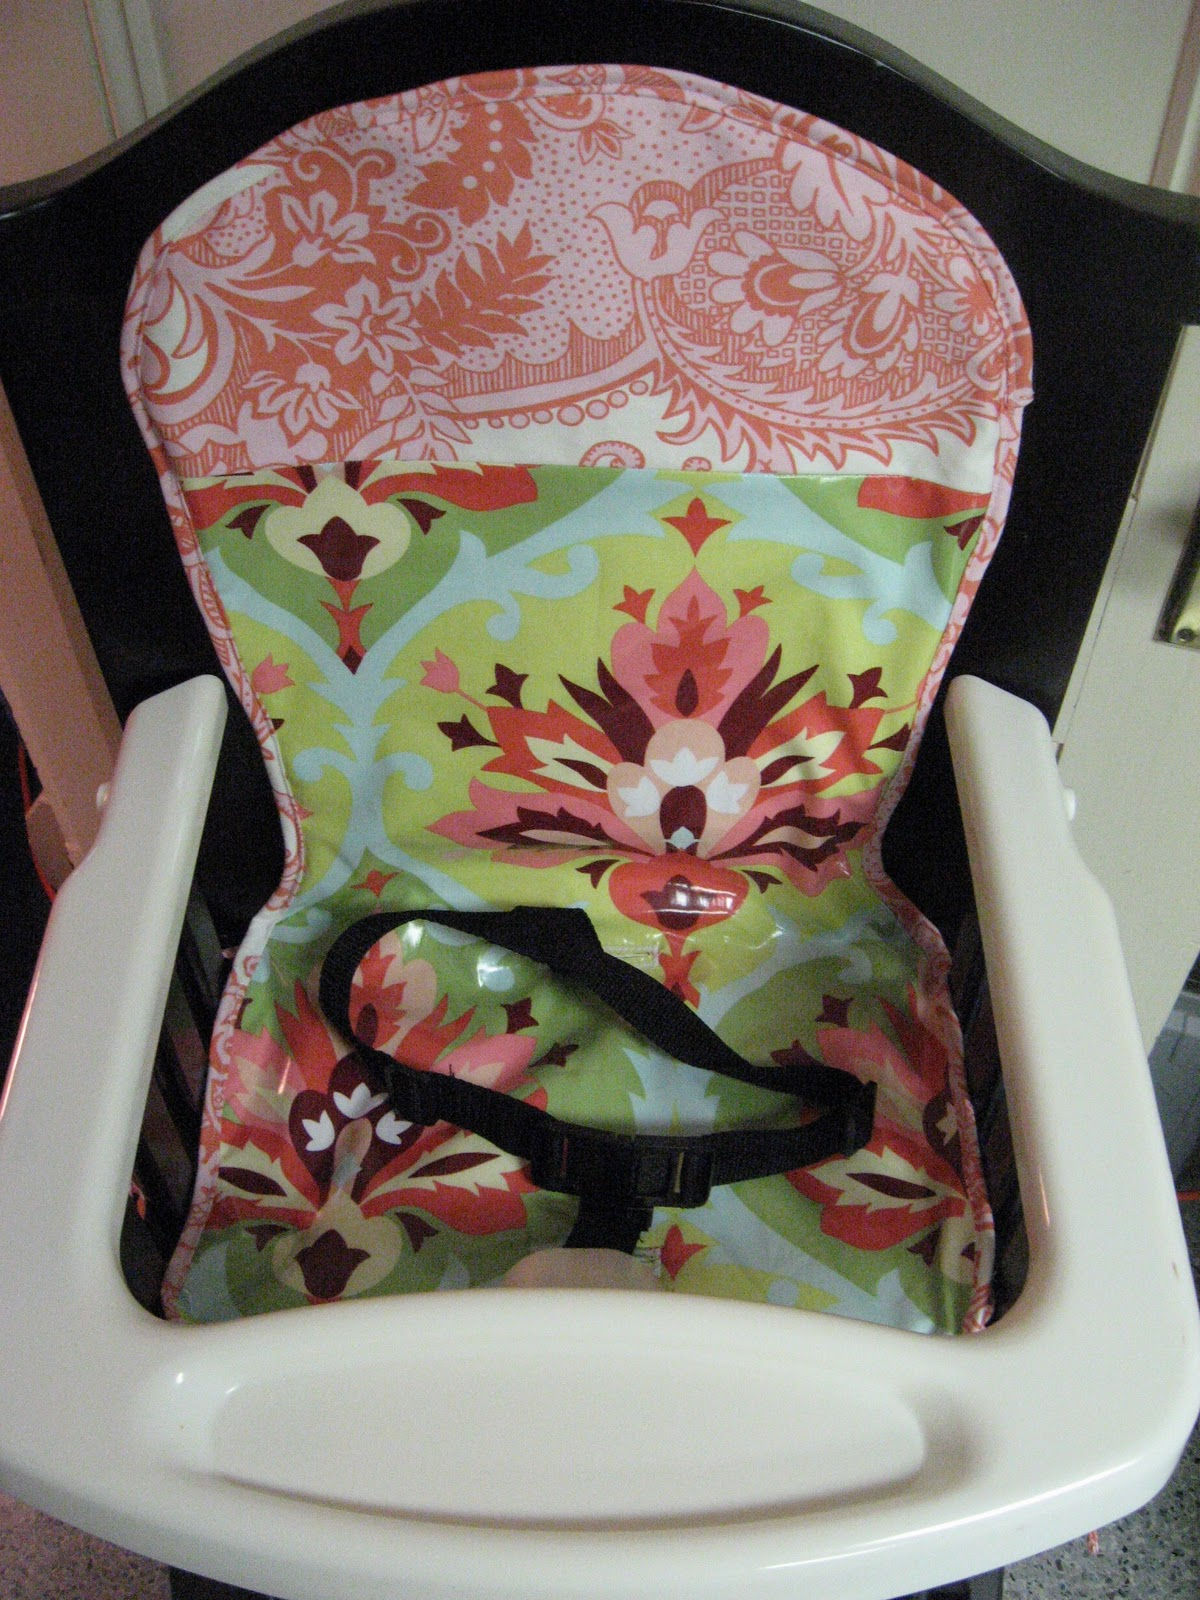 Eddie Bauer High Chair Cover Pattern Stool Guest Project Transform Your From Blah To